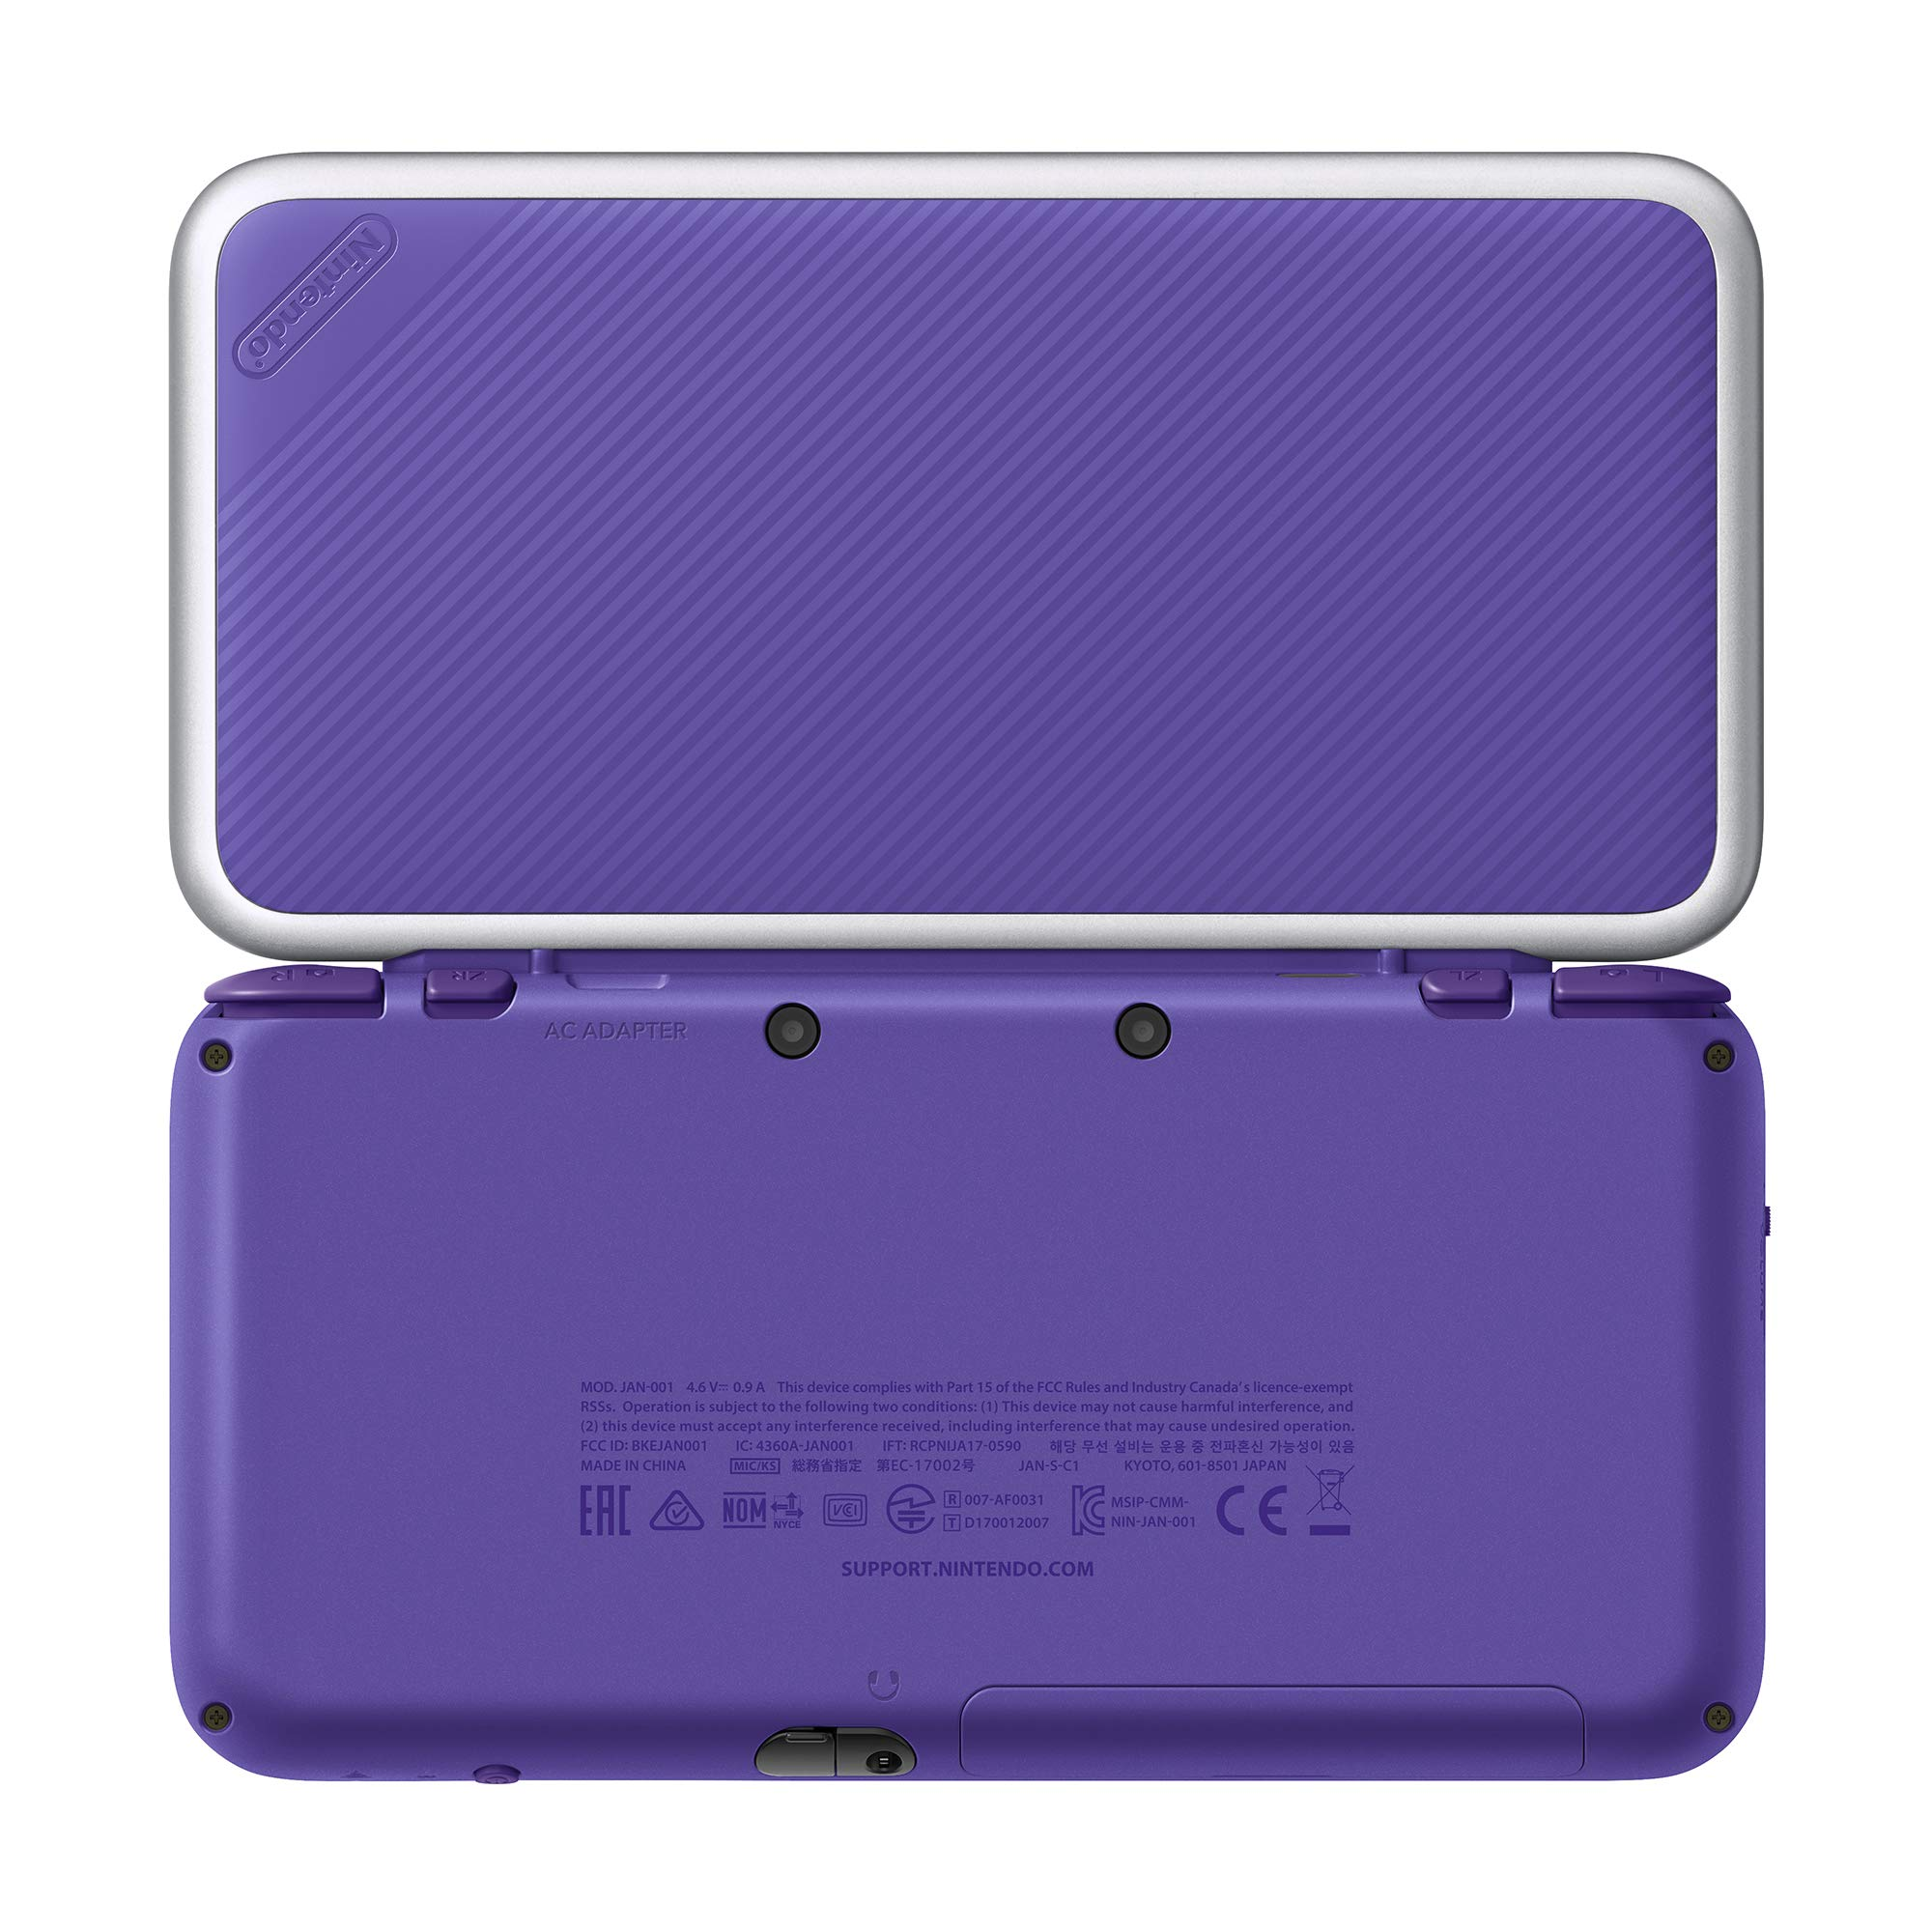 New Nintendo 2DS XL - Purple + Silver With Mario Kart 7 Pre-installed - Nintendo 2DS by Nintendo (Image #4)